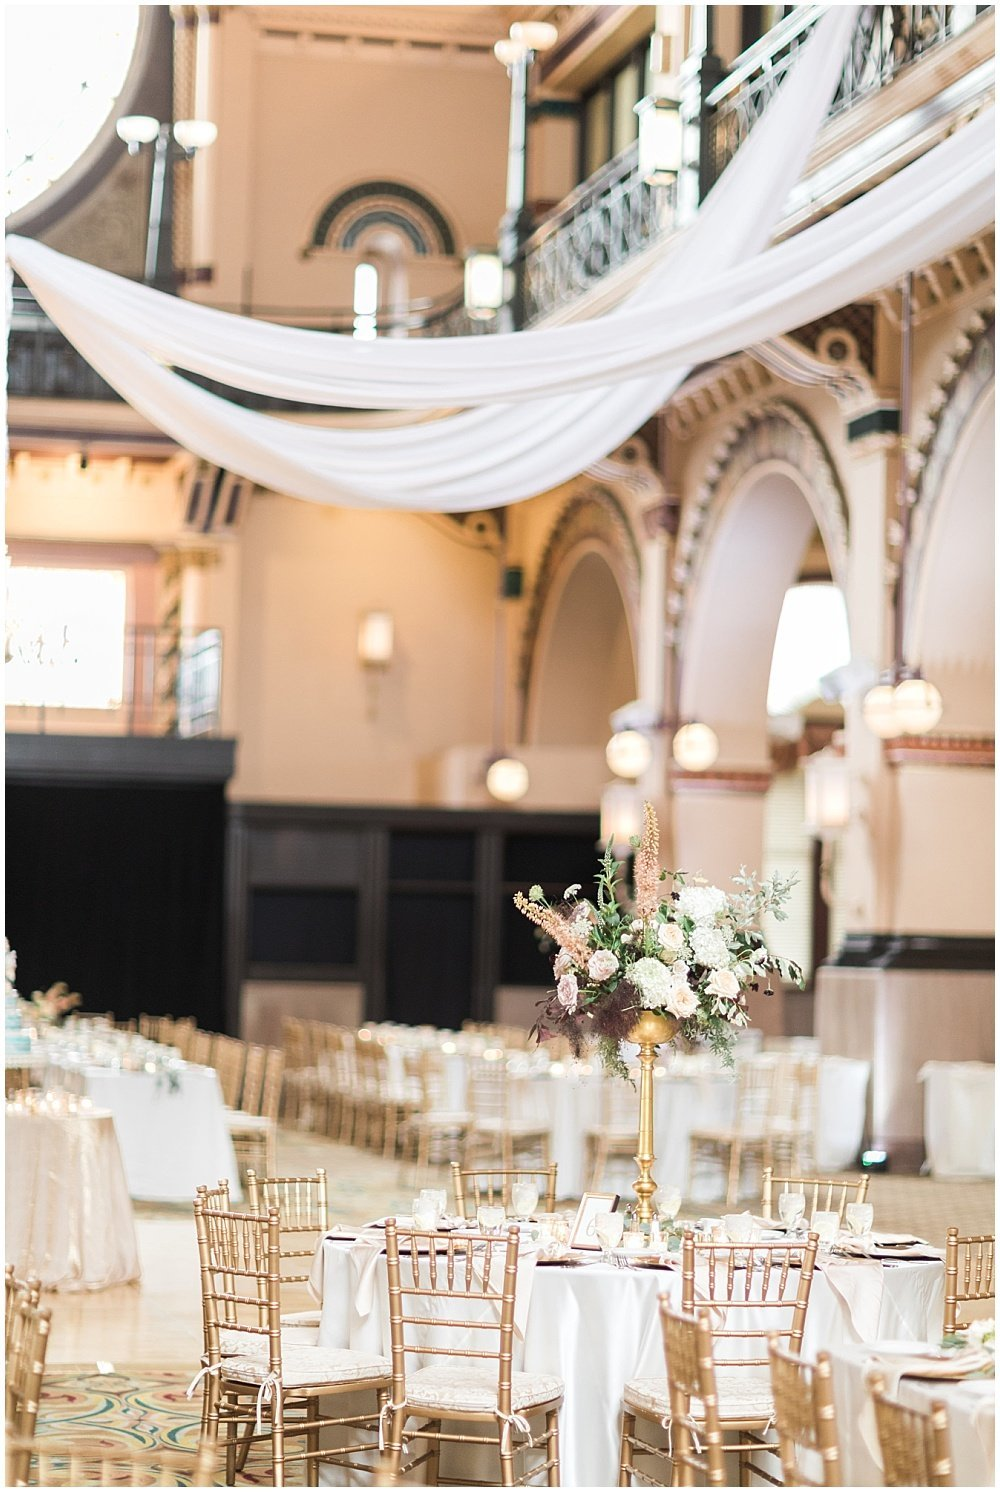 Summer-Mexican-Inspired-Gold-And-Floral-Crowne-Plaza-Indianapolis-Downtown-Union-Station-Wedding-Cory-Jackie-Wedding-Photographers-Jessica-Dum-Wedding-Coordination_photo___0039